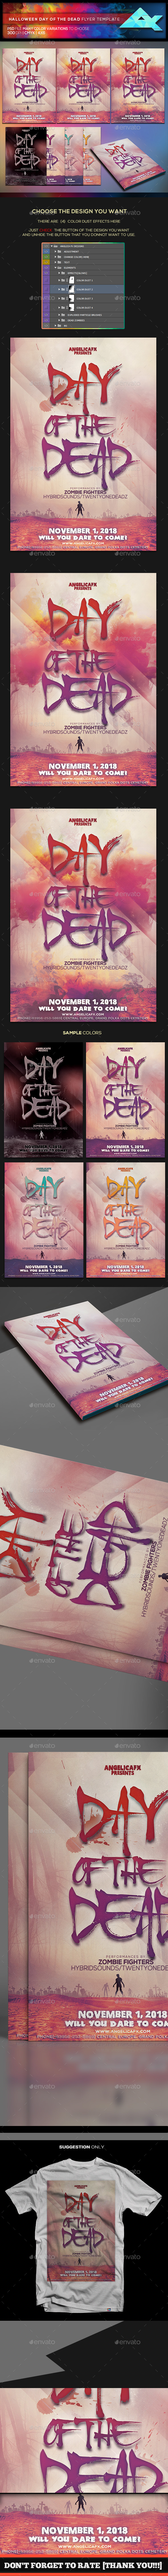 Halloween Day of the Dead Flyer Template